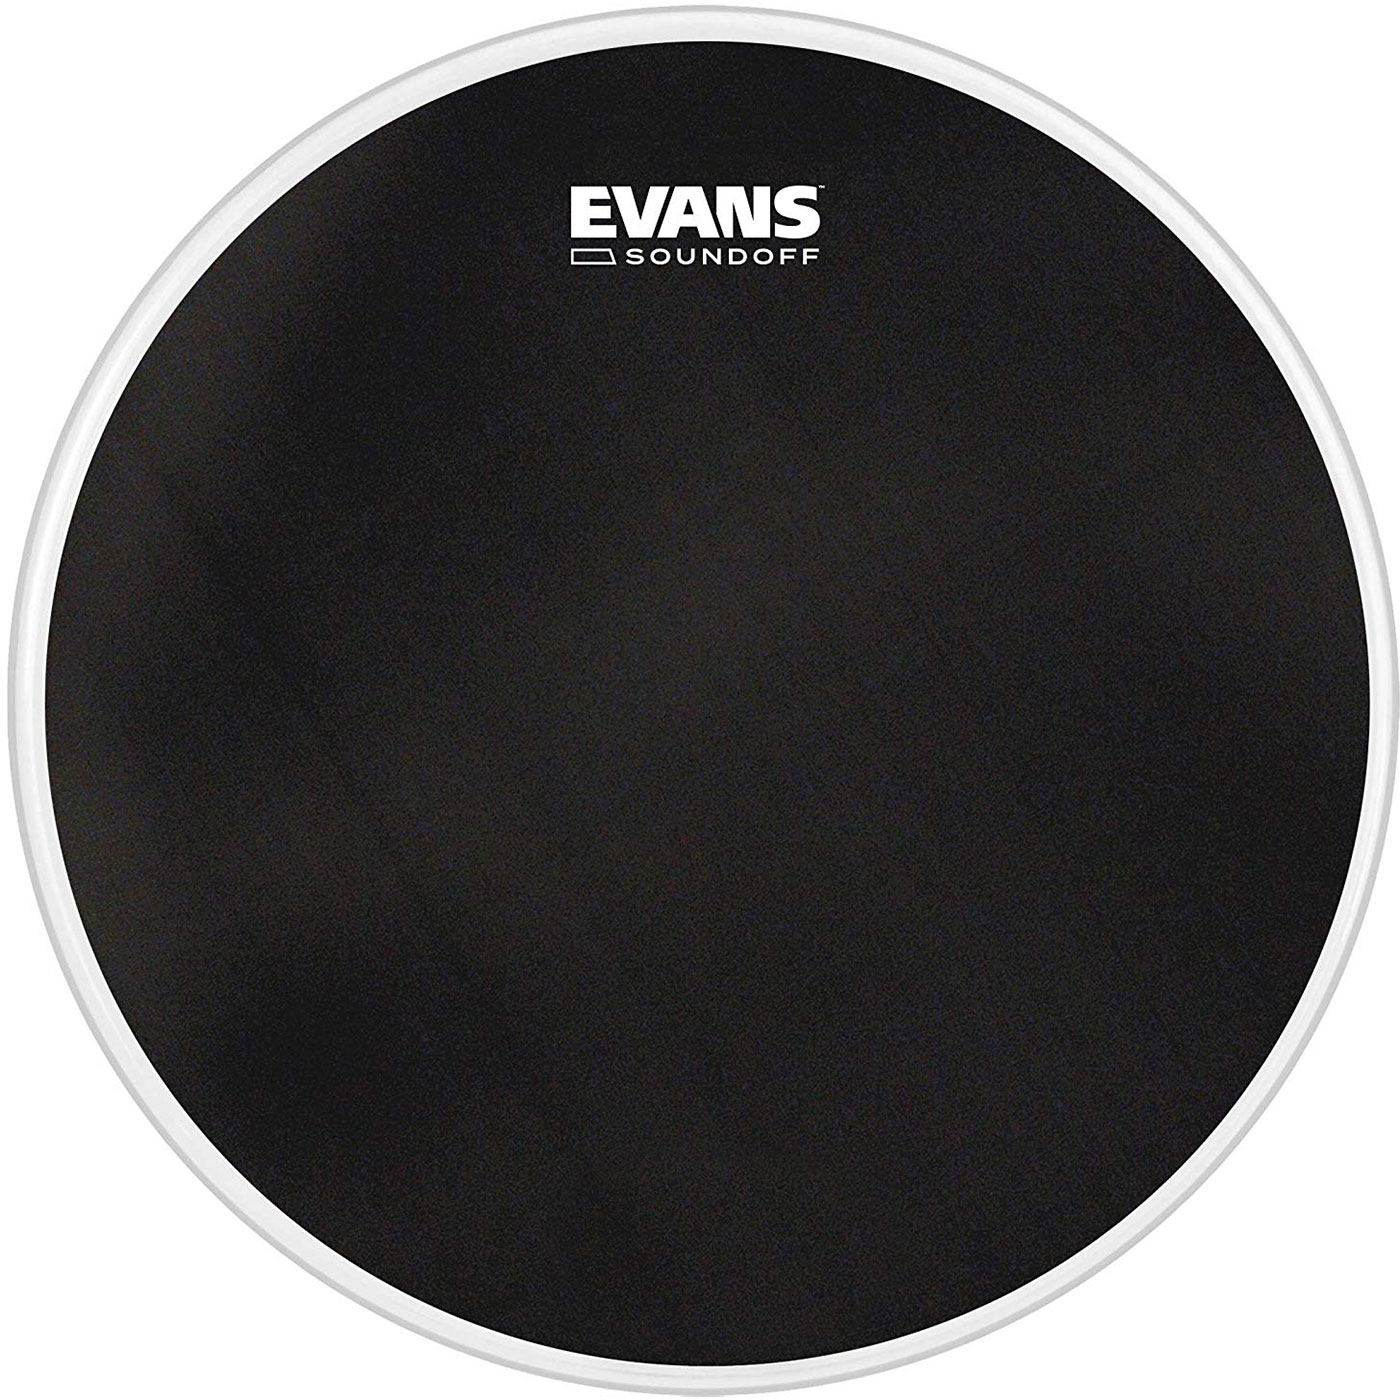 "Evans 20"" SoundOff Mesh Bass Drum Head"